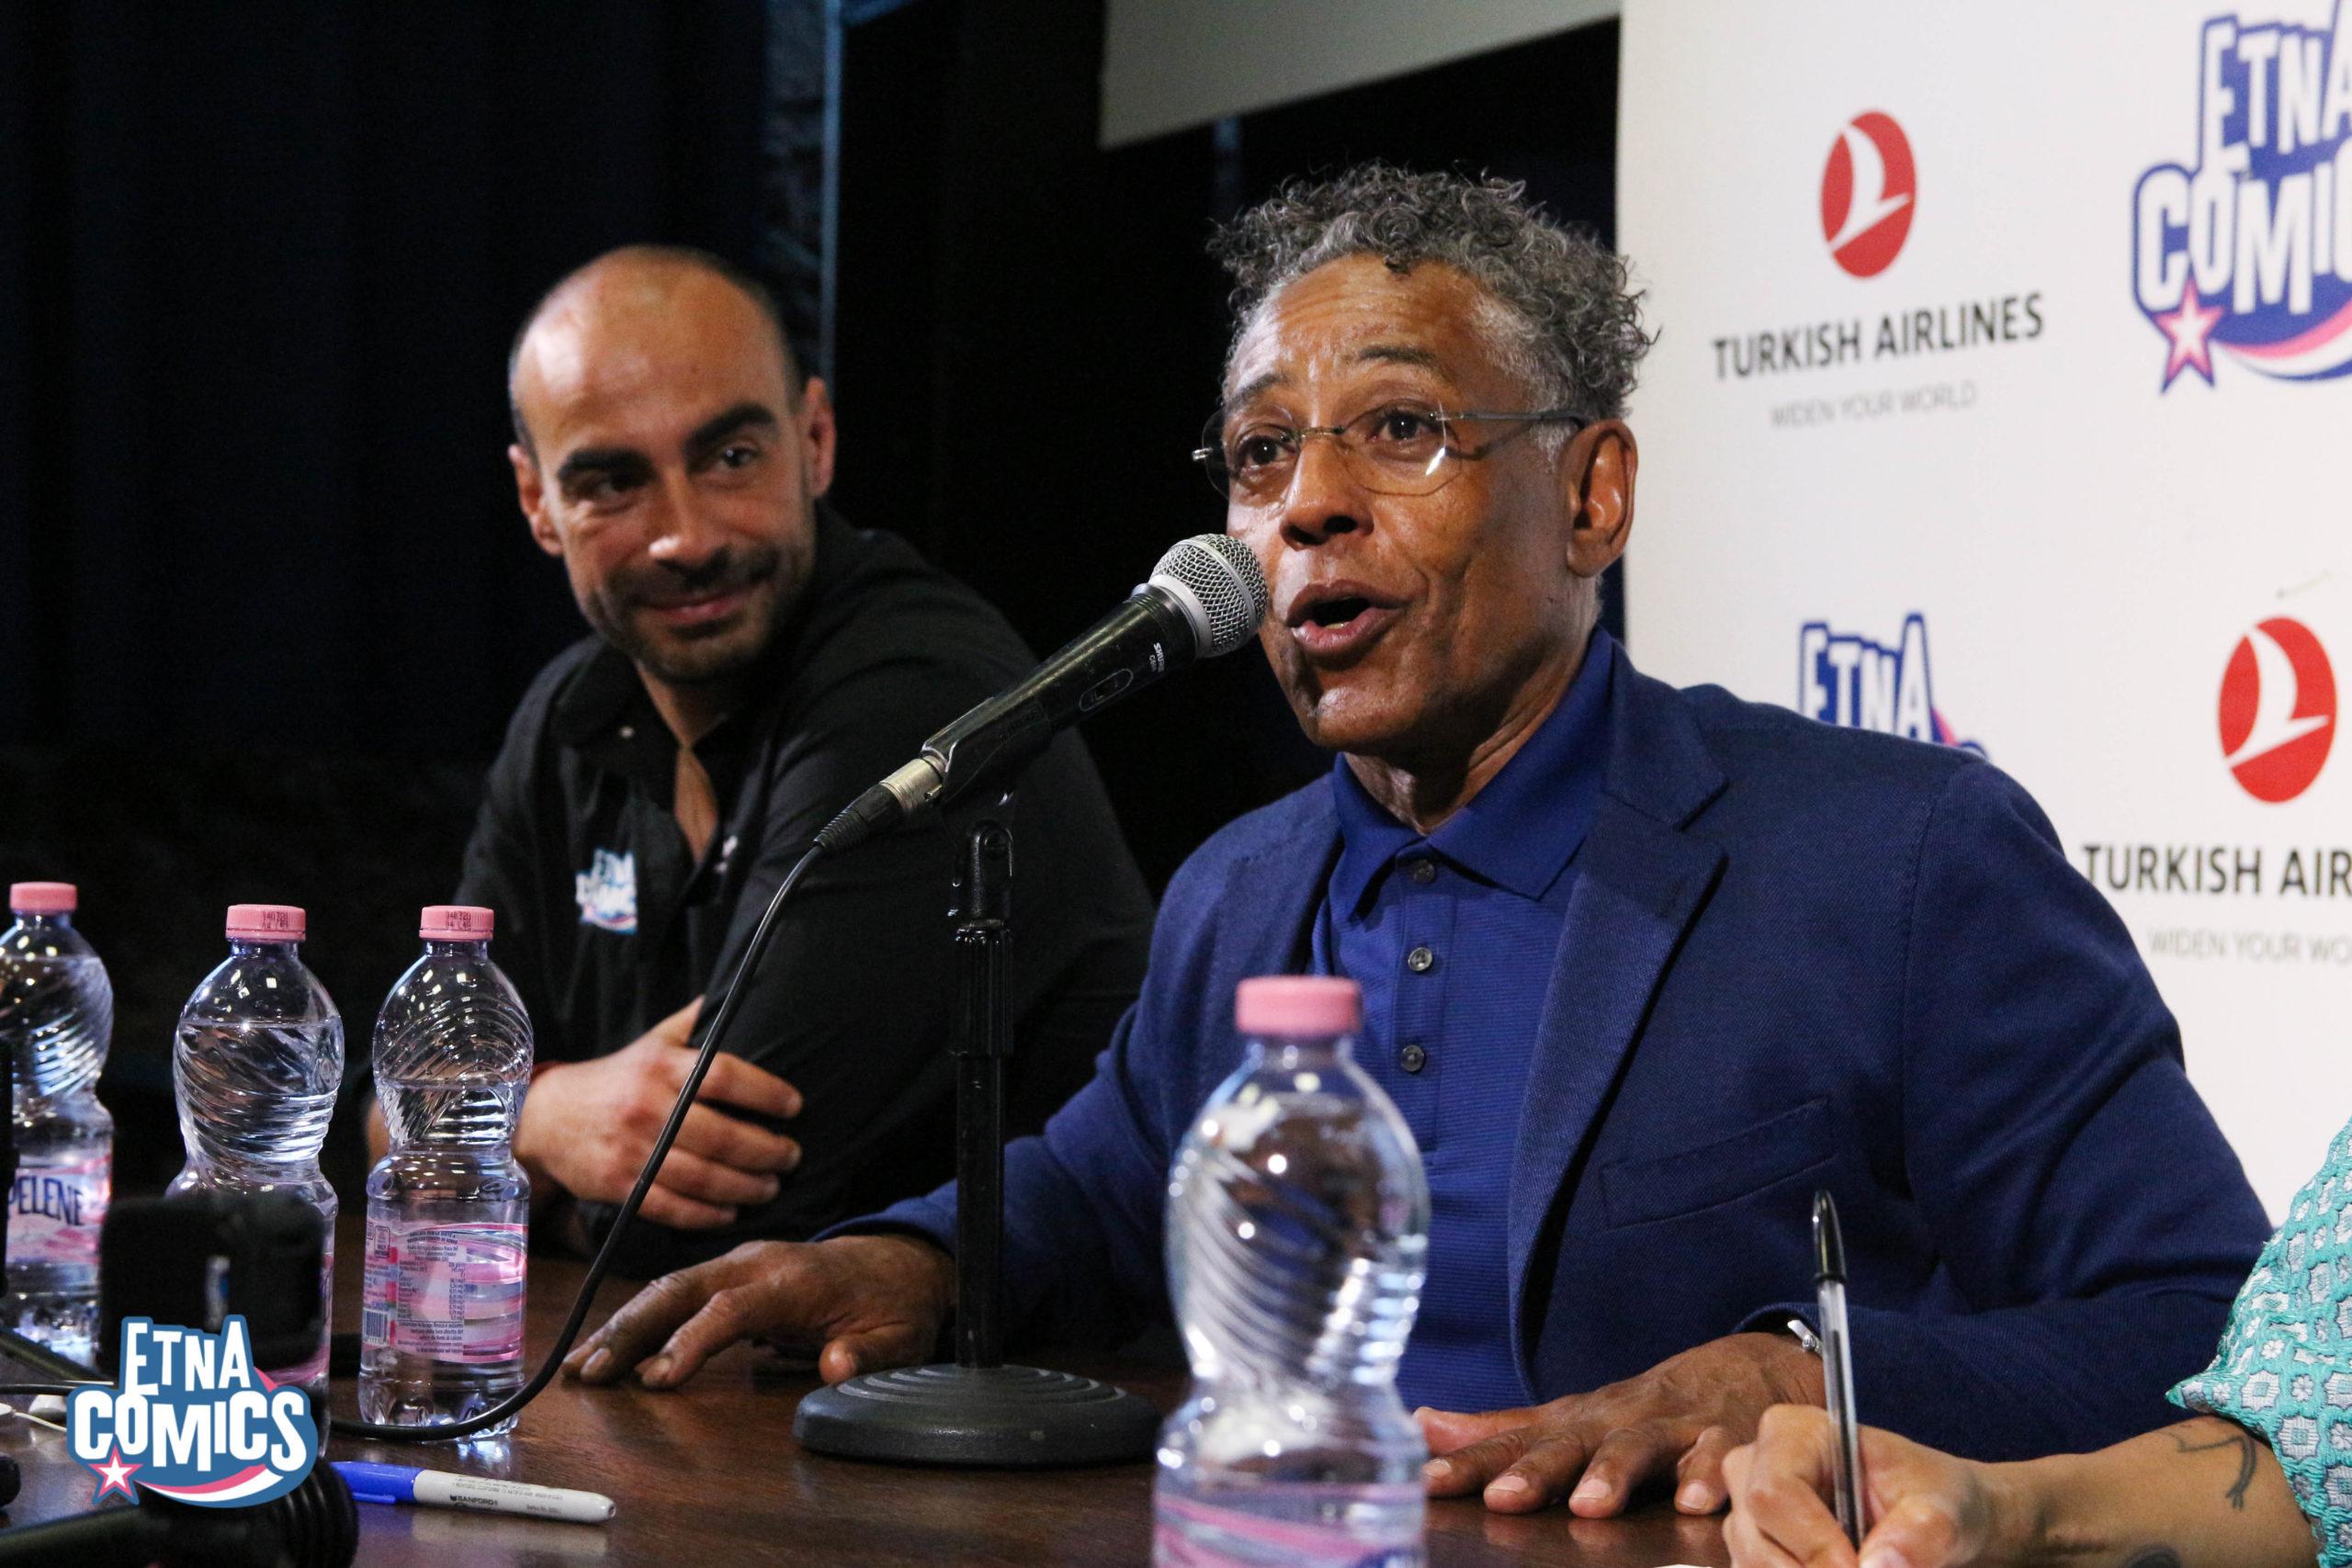 Giancarlo Esposito Etna Comics Awards 2019 Keo Marketing